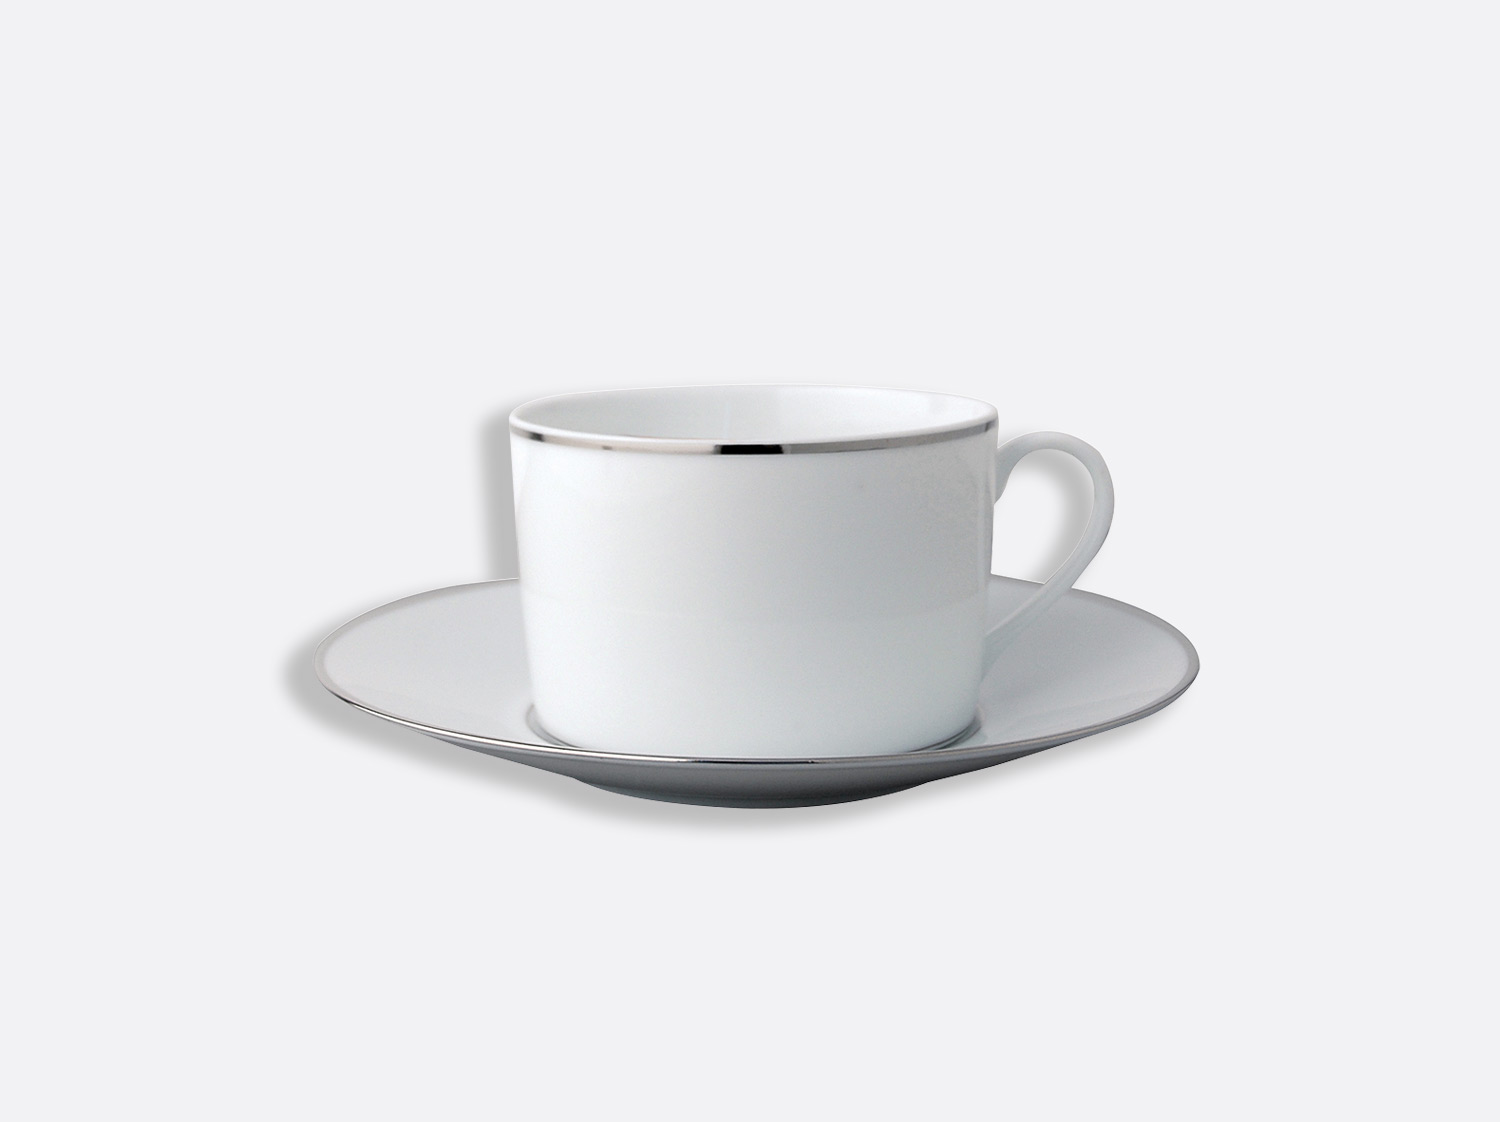 China Breakfast cup & saucer 25 cl of the collection Cristal | Bernardaud